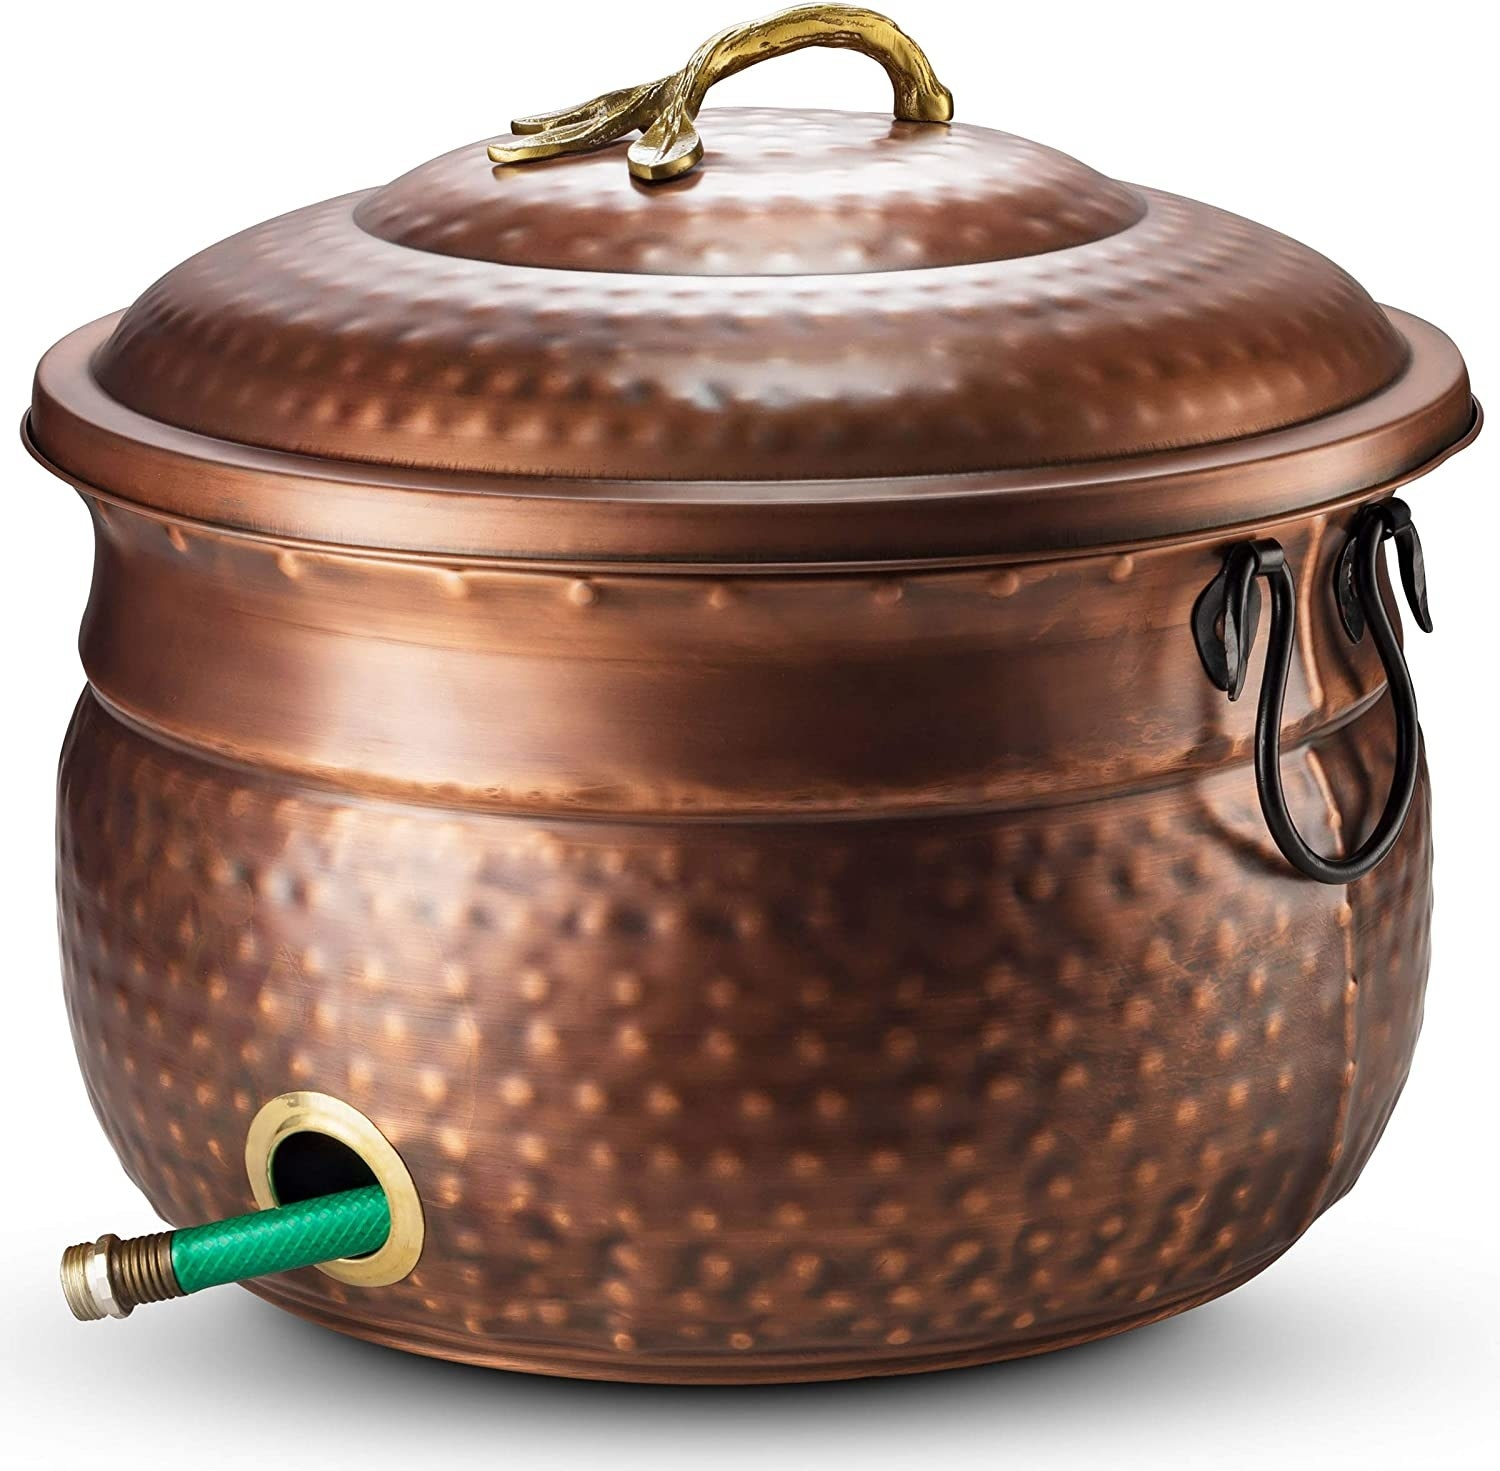 an embossed copper hose pot with a lid